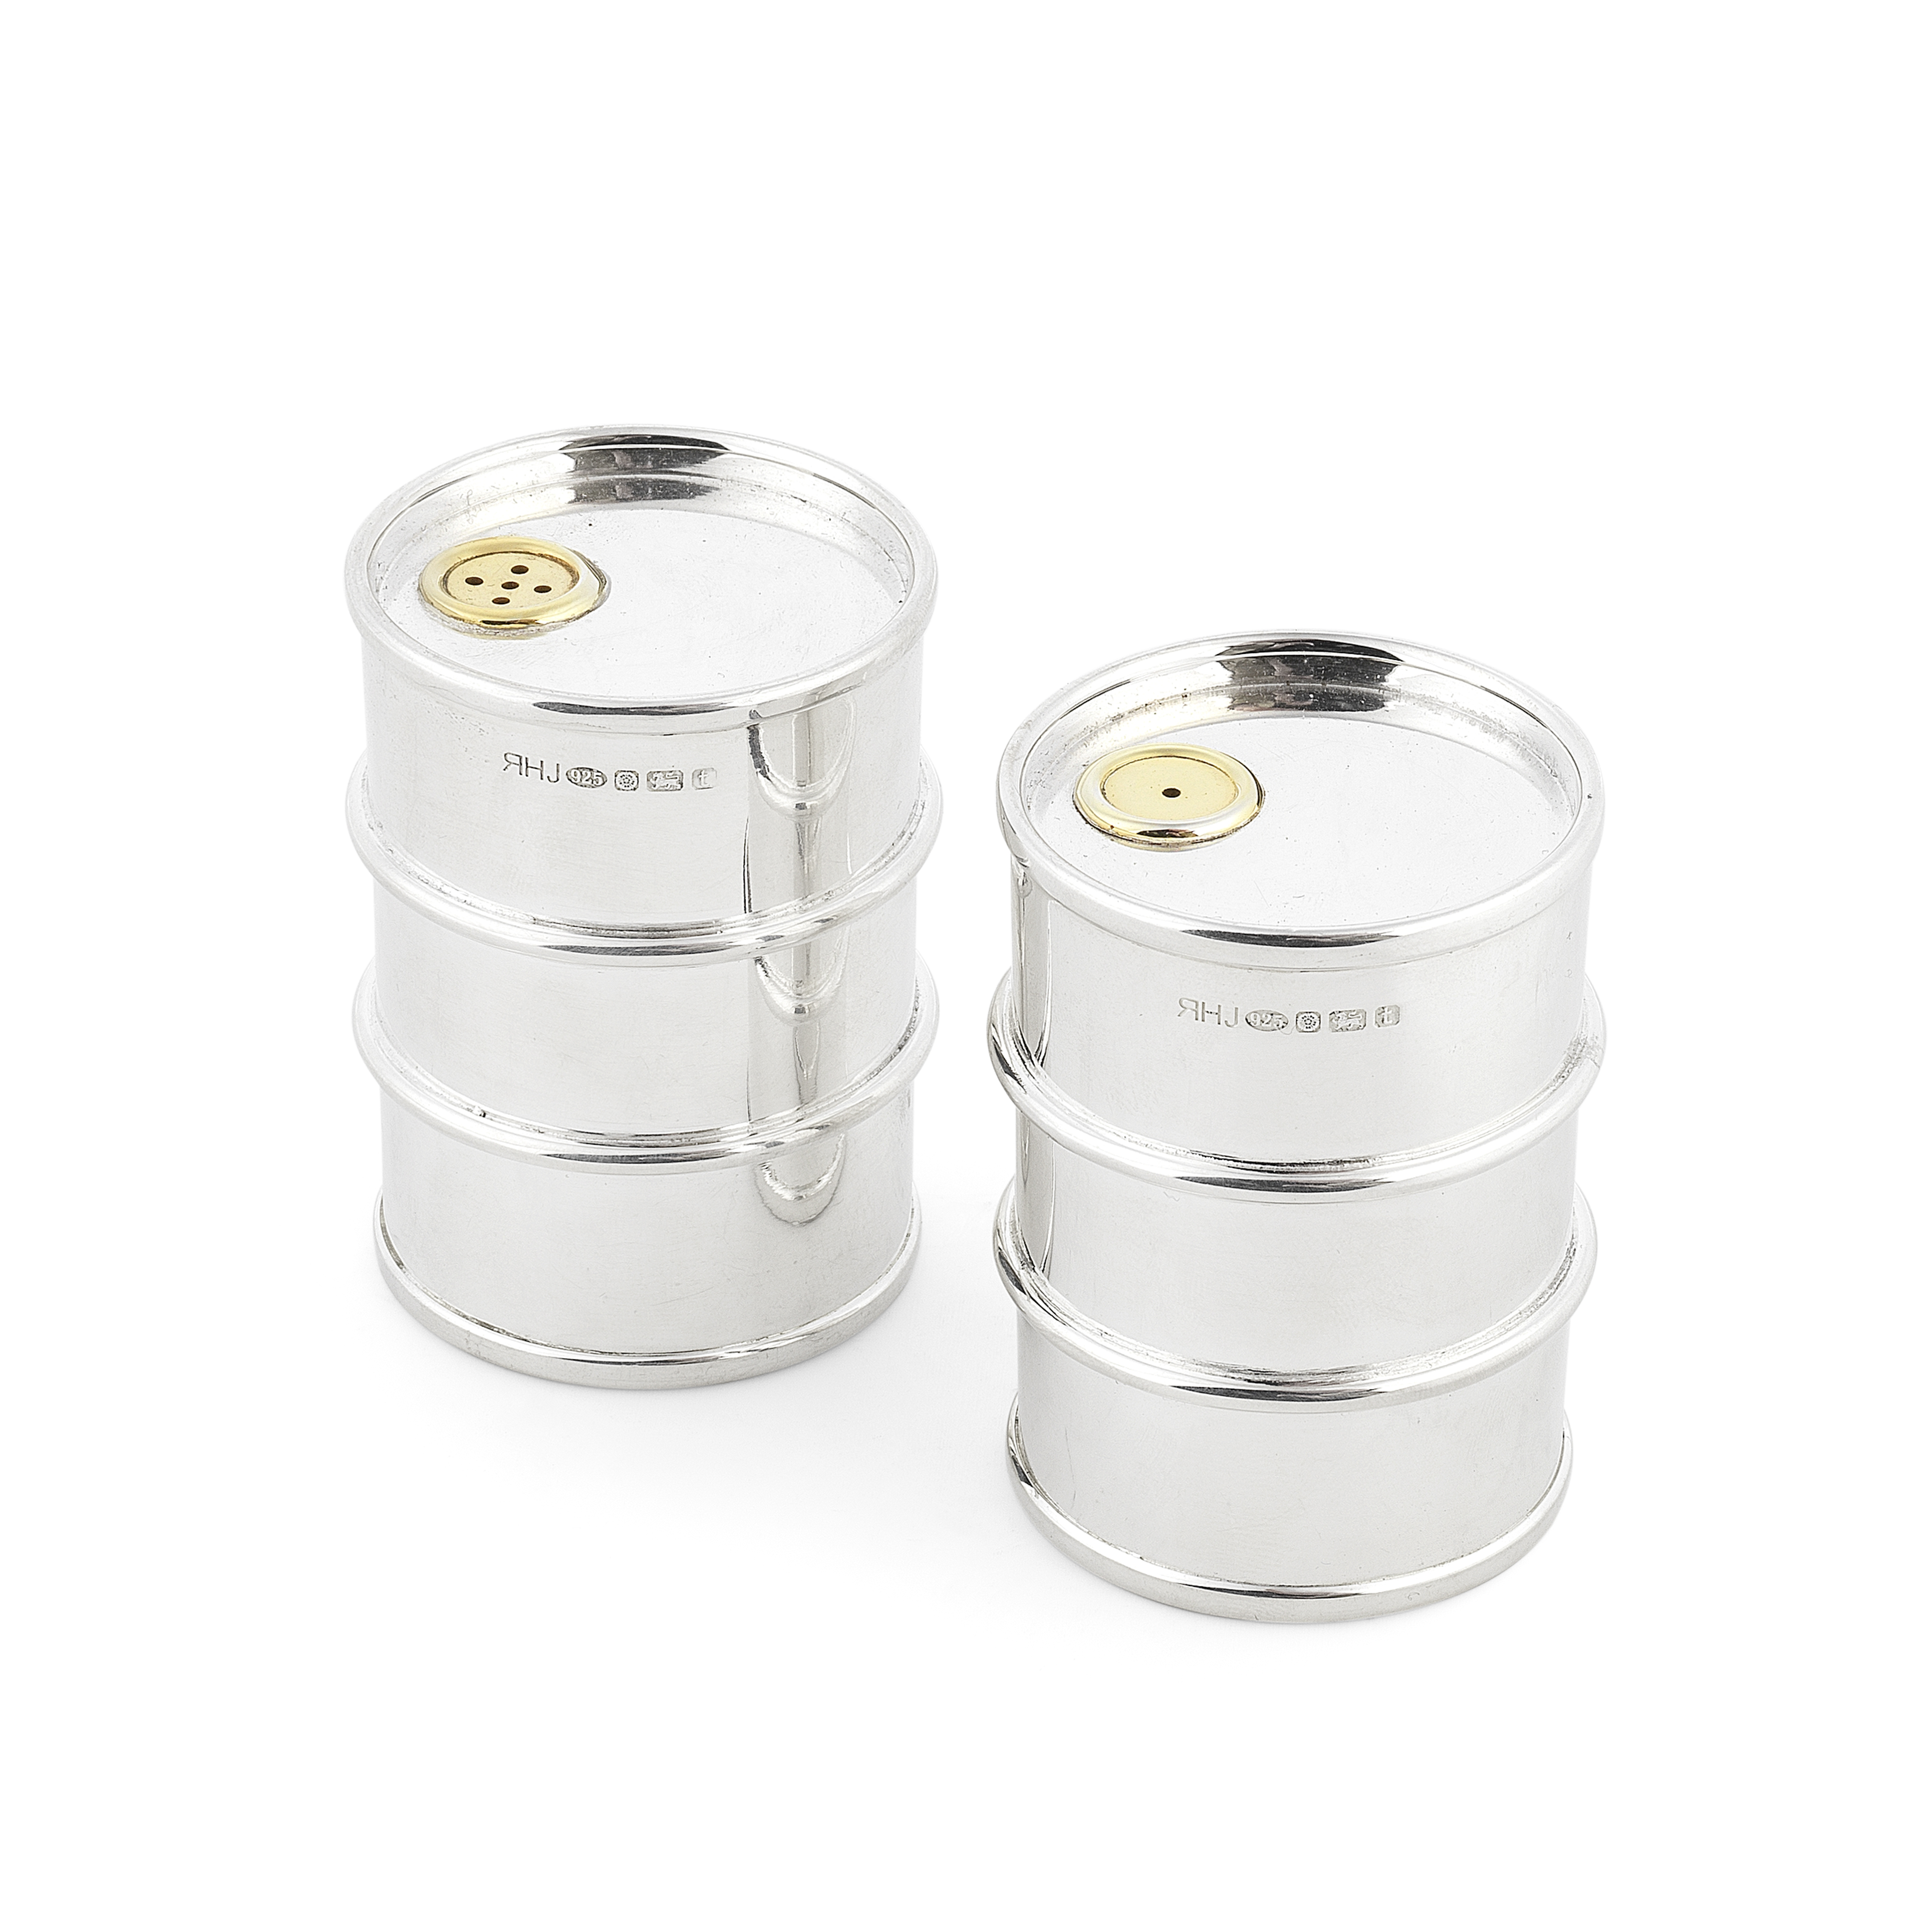 A novelty pair of silver 'oil drum' salt and pepper shakers Rebecca Joselyn, Sheffield 2018 (2)